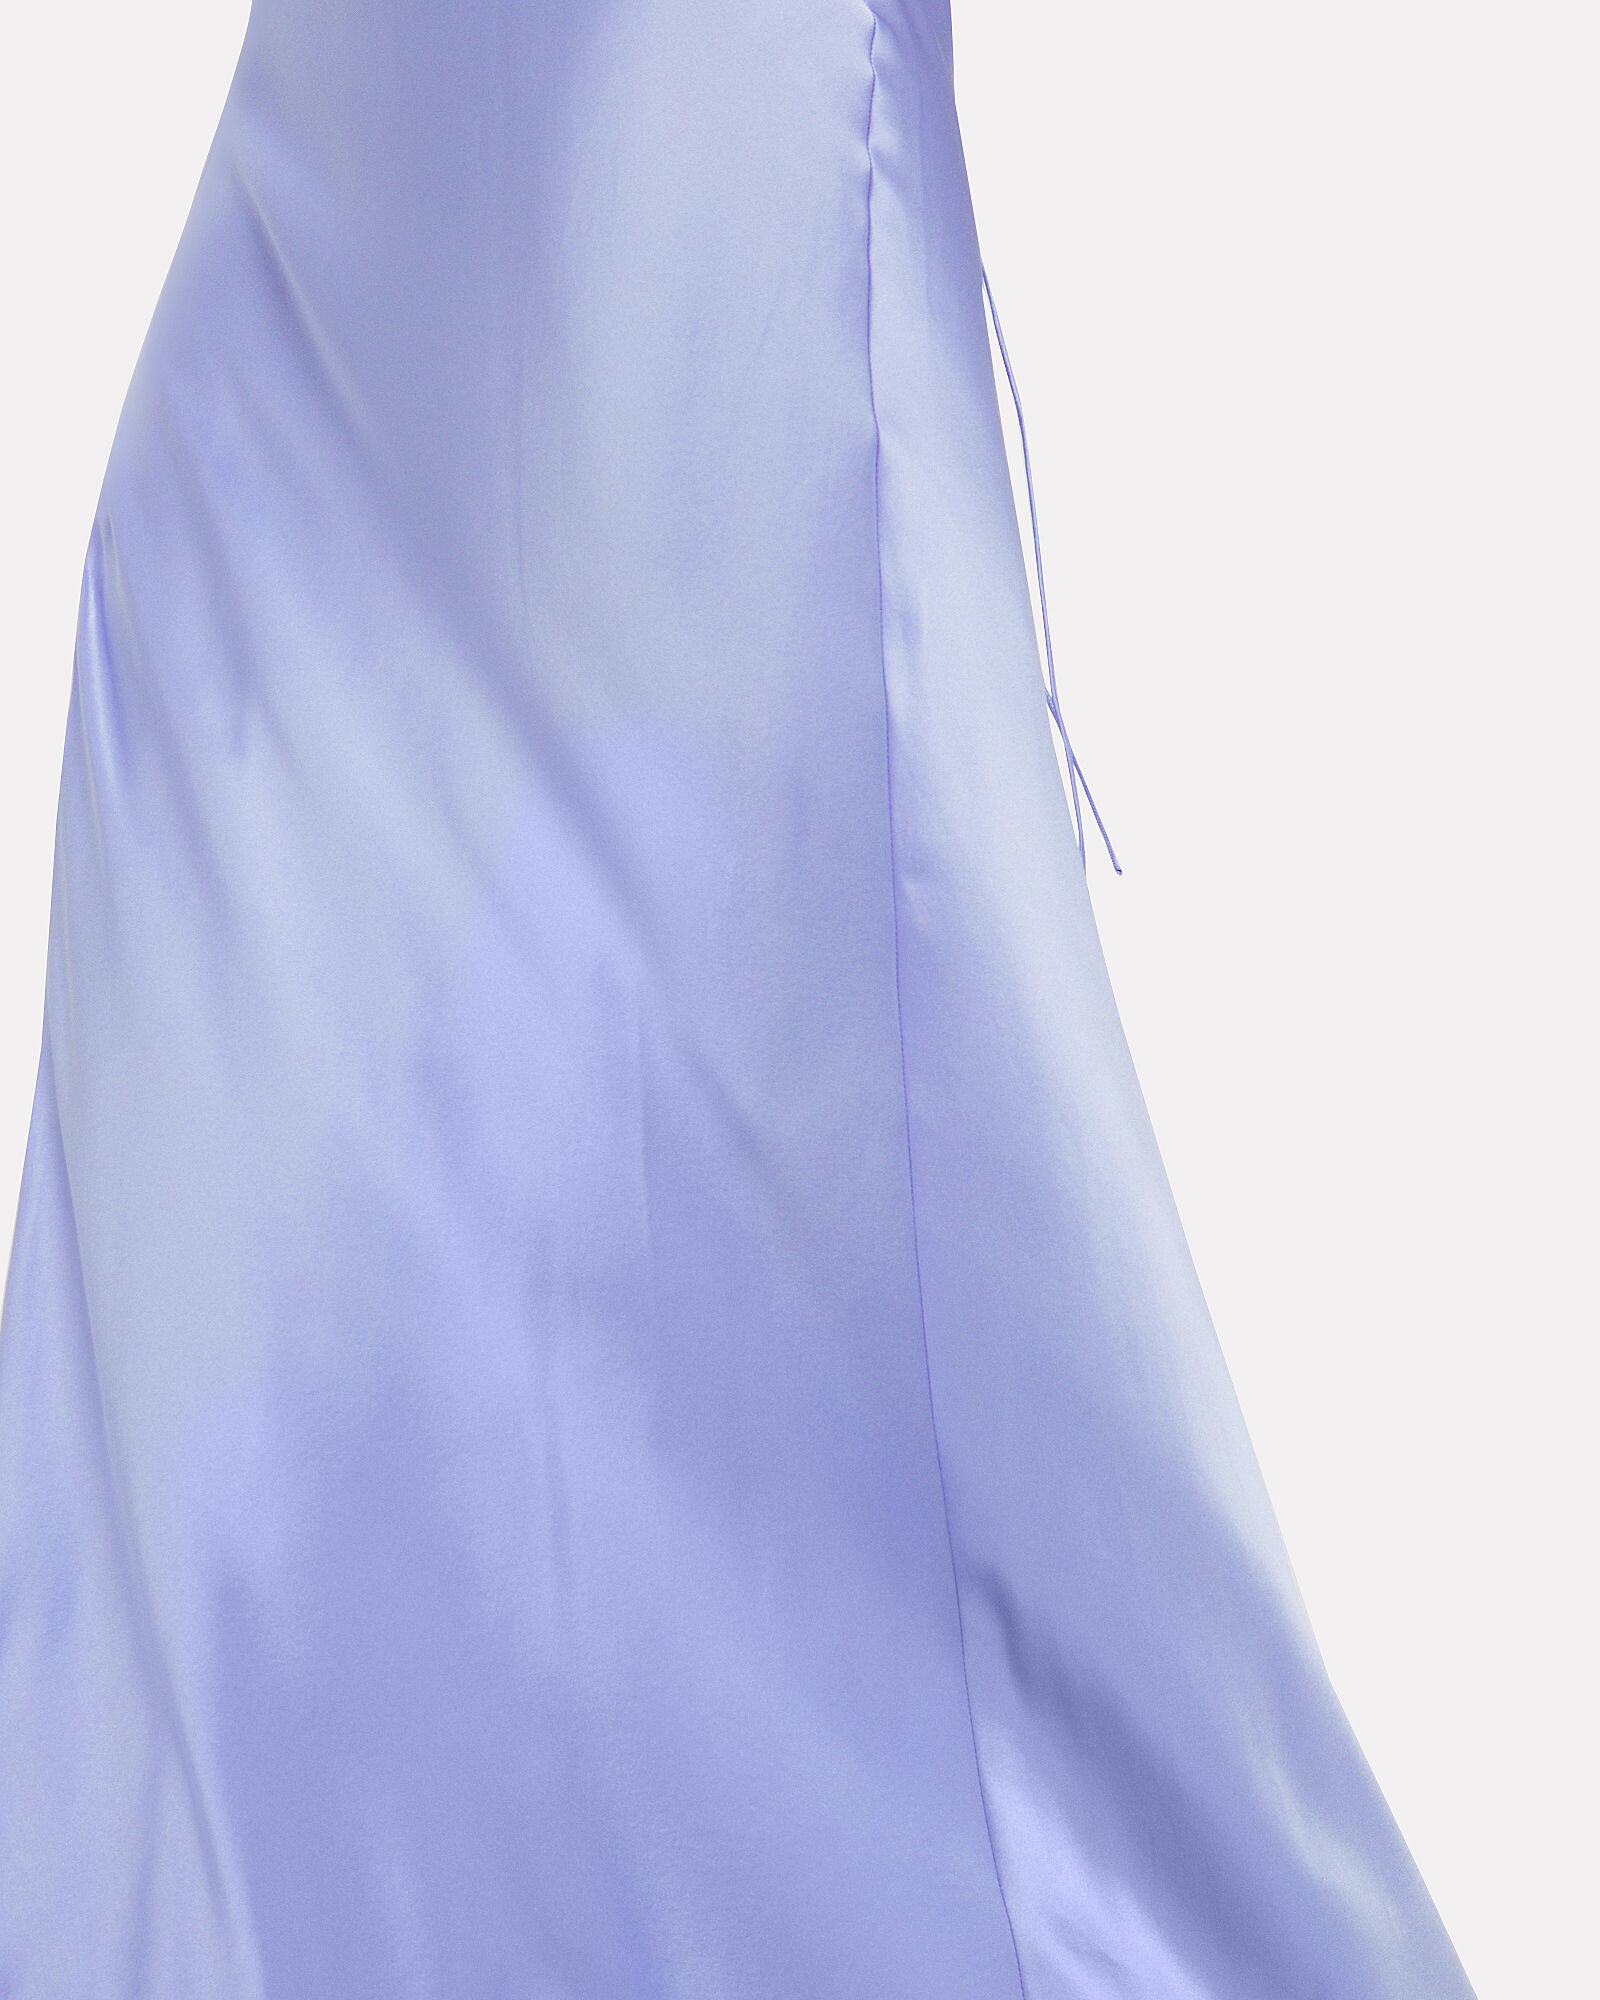 Bias Cut Silk Charmeuse Gown, BLUE-LT, hi-res